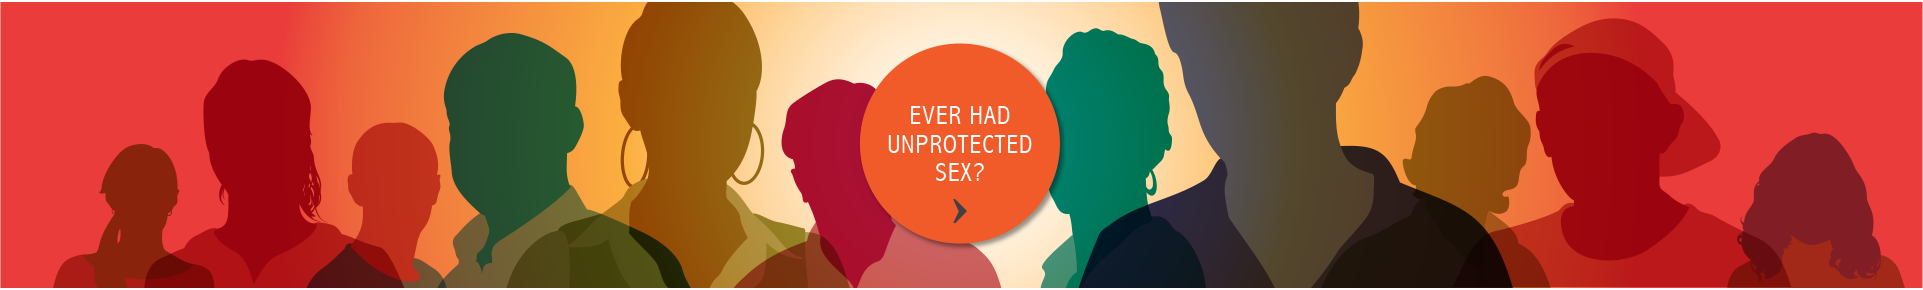 Ever had unprotected sex?